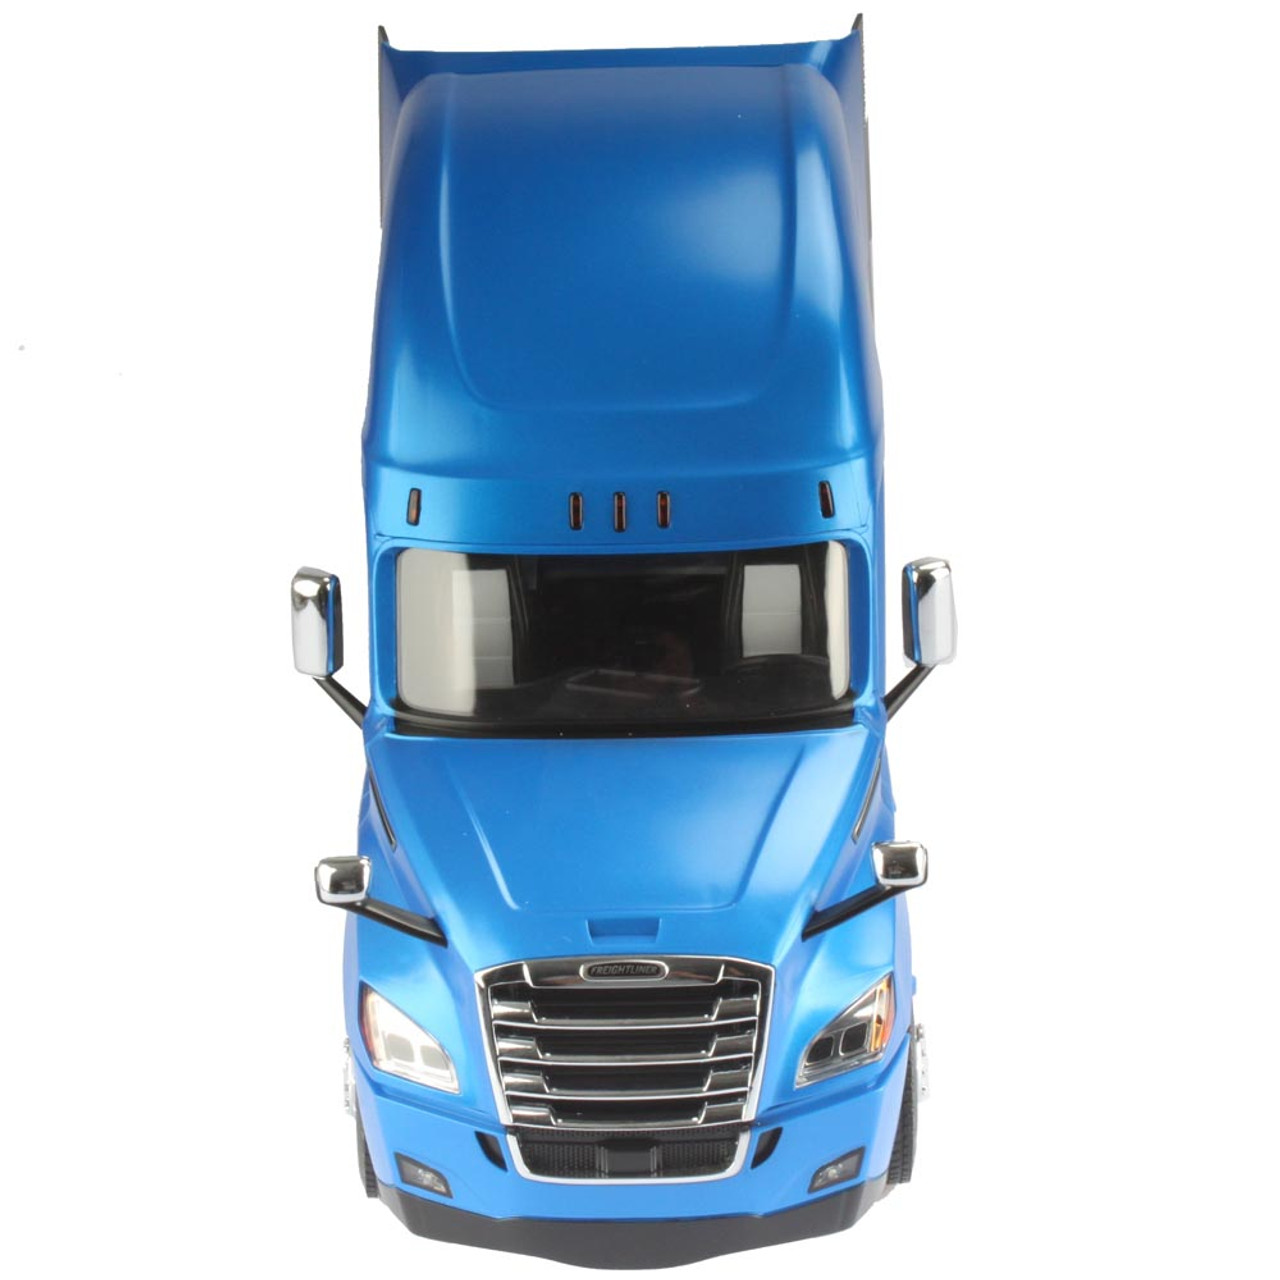 Diecast Masters Freightliner Cascadia Tractor w/Sleeper Cab - Radio Controlled - 1:16